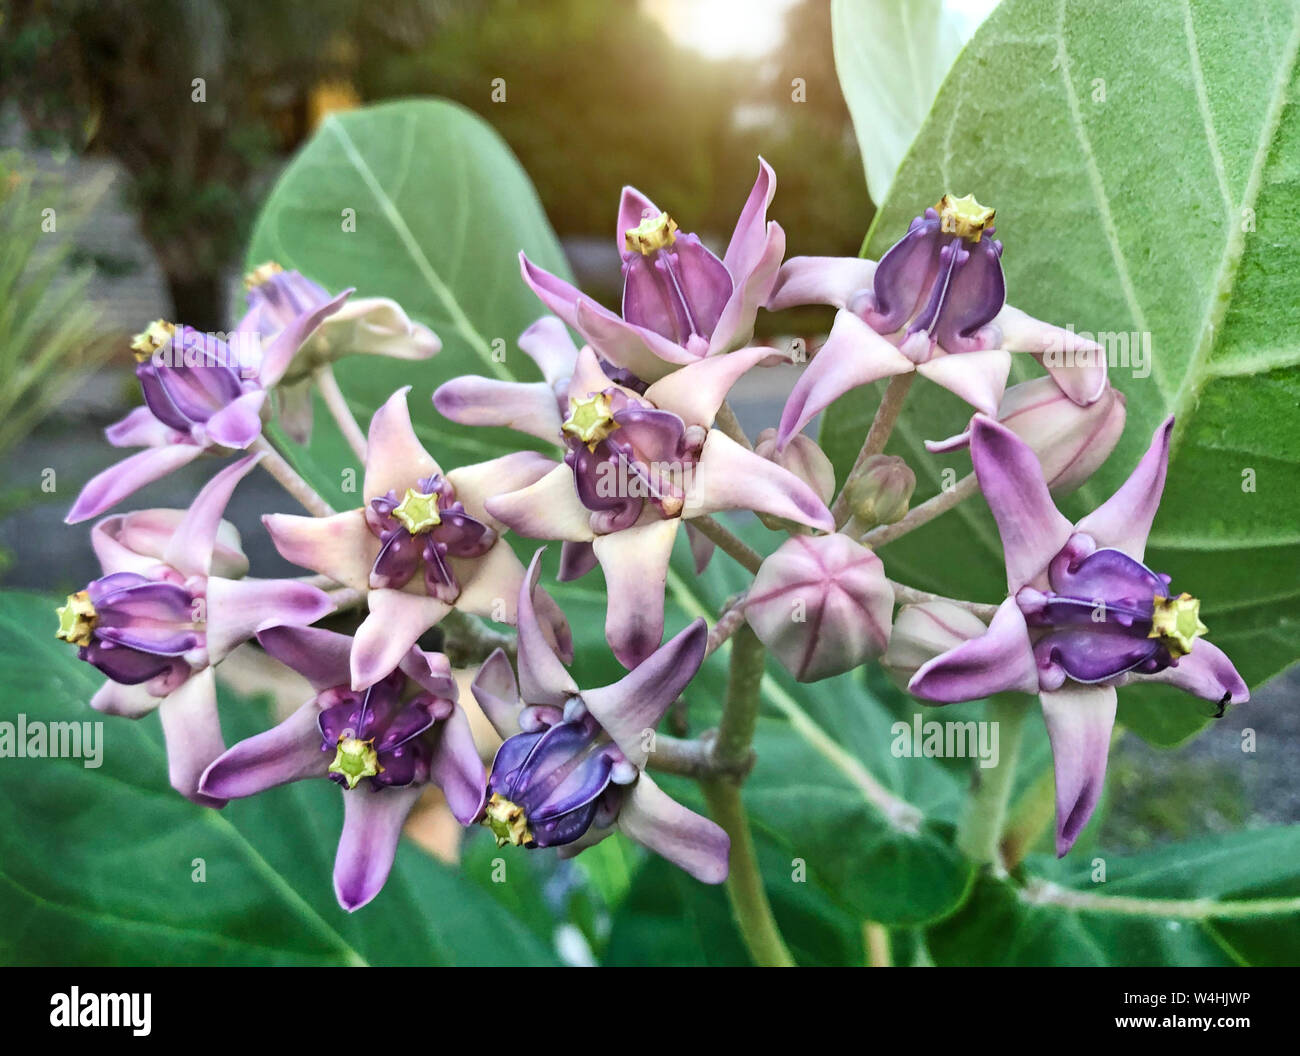 100 White Calotropis gigantea Seeds Crown flower Flower garland GIANT MILKWEED